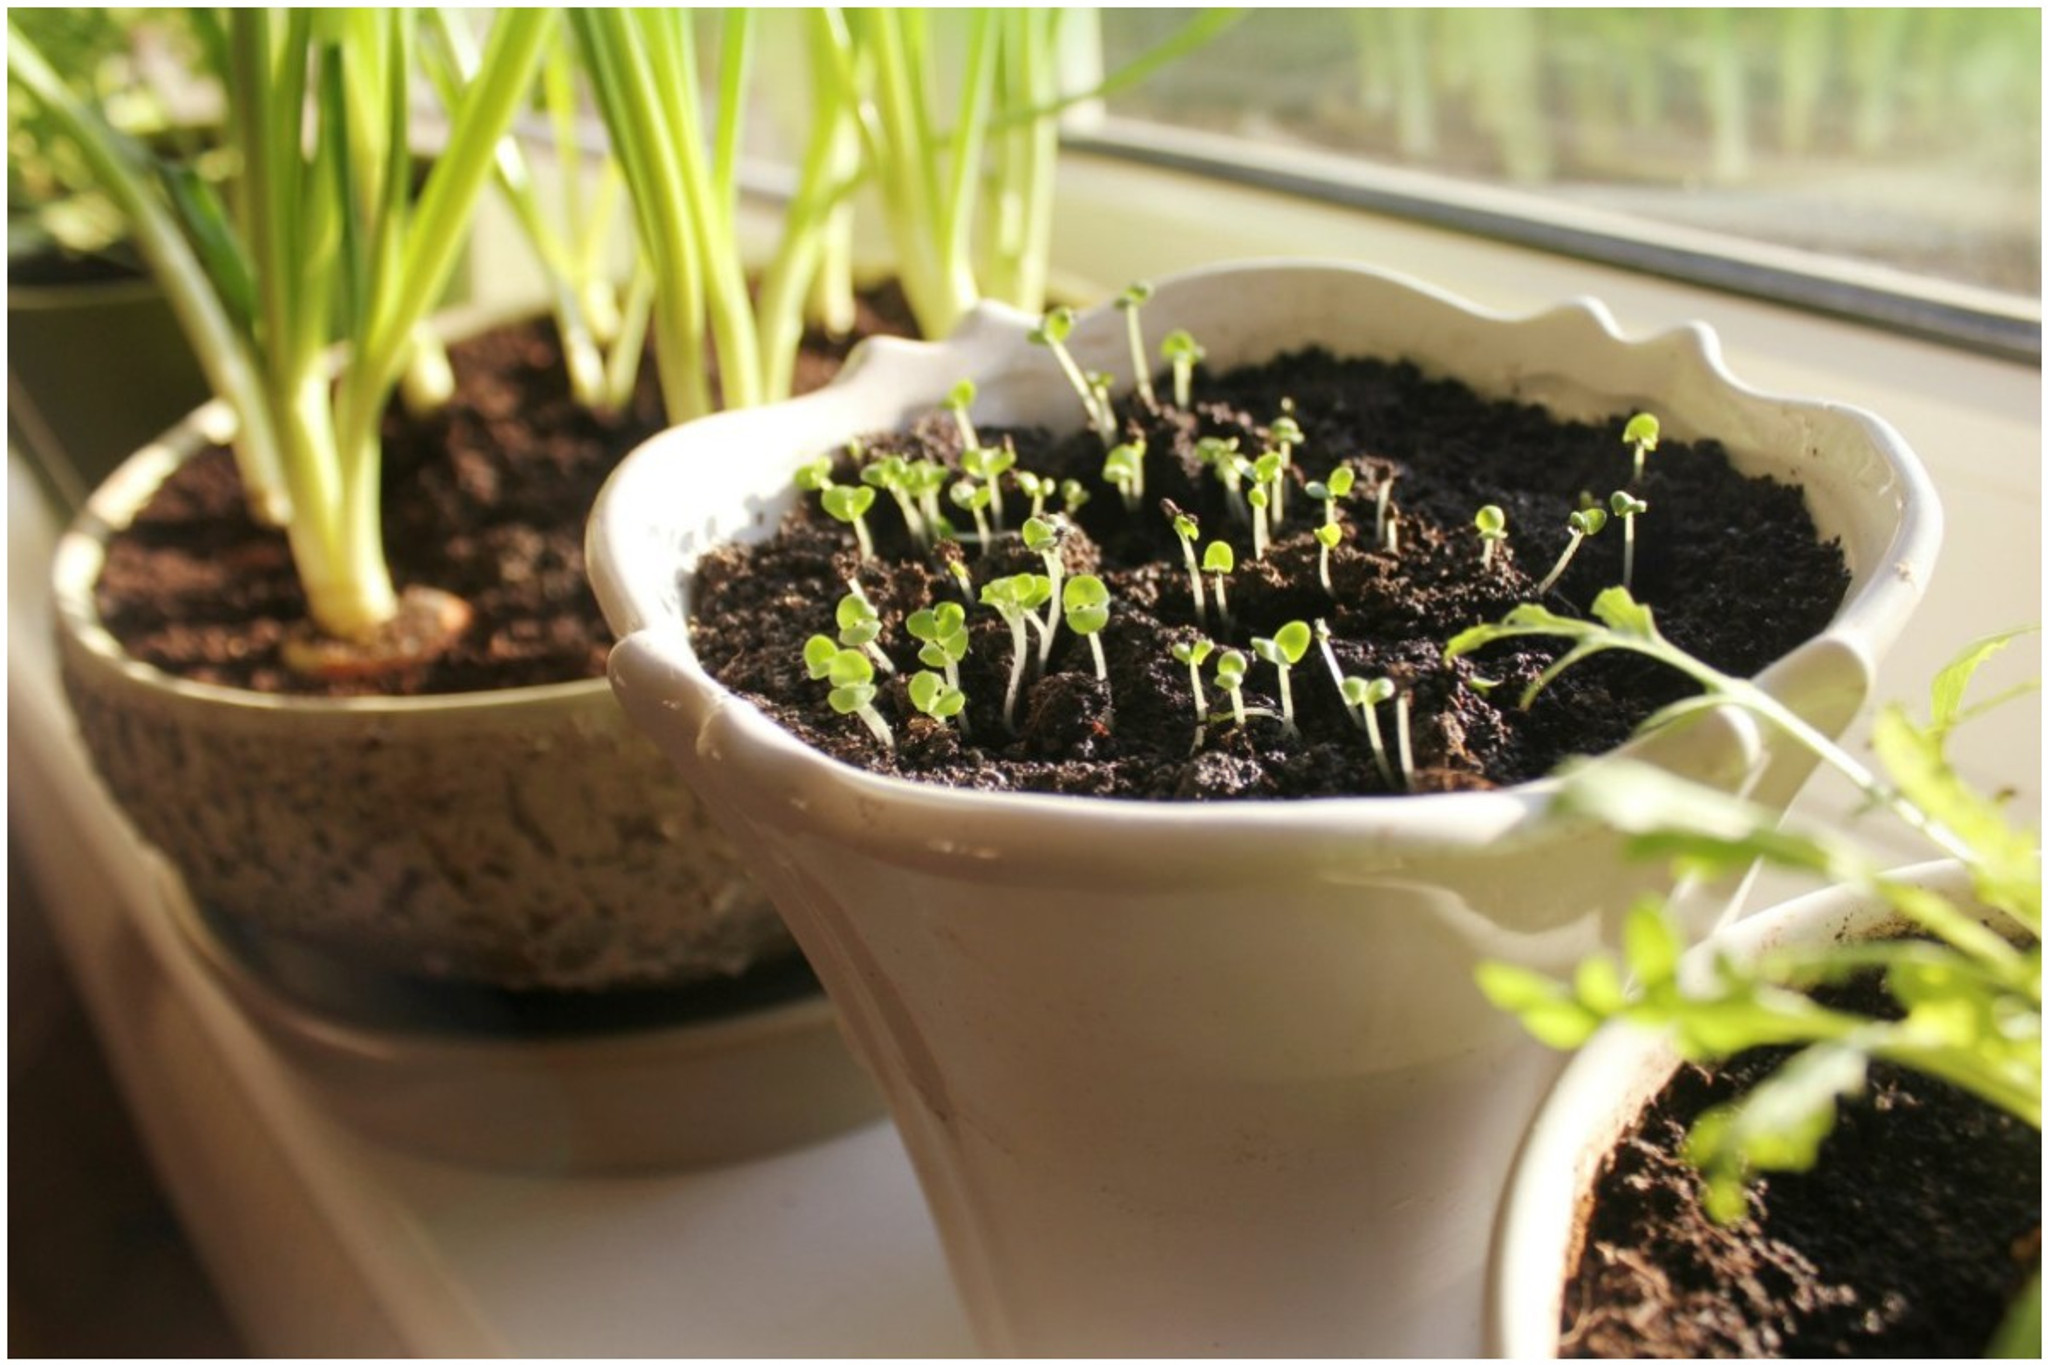 Indoor Gardening Tips from the Experts